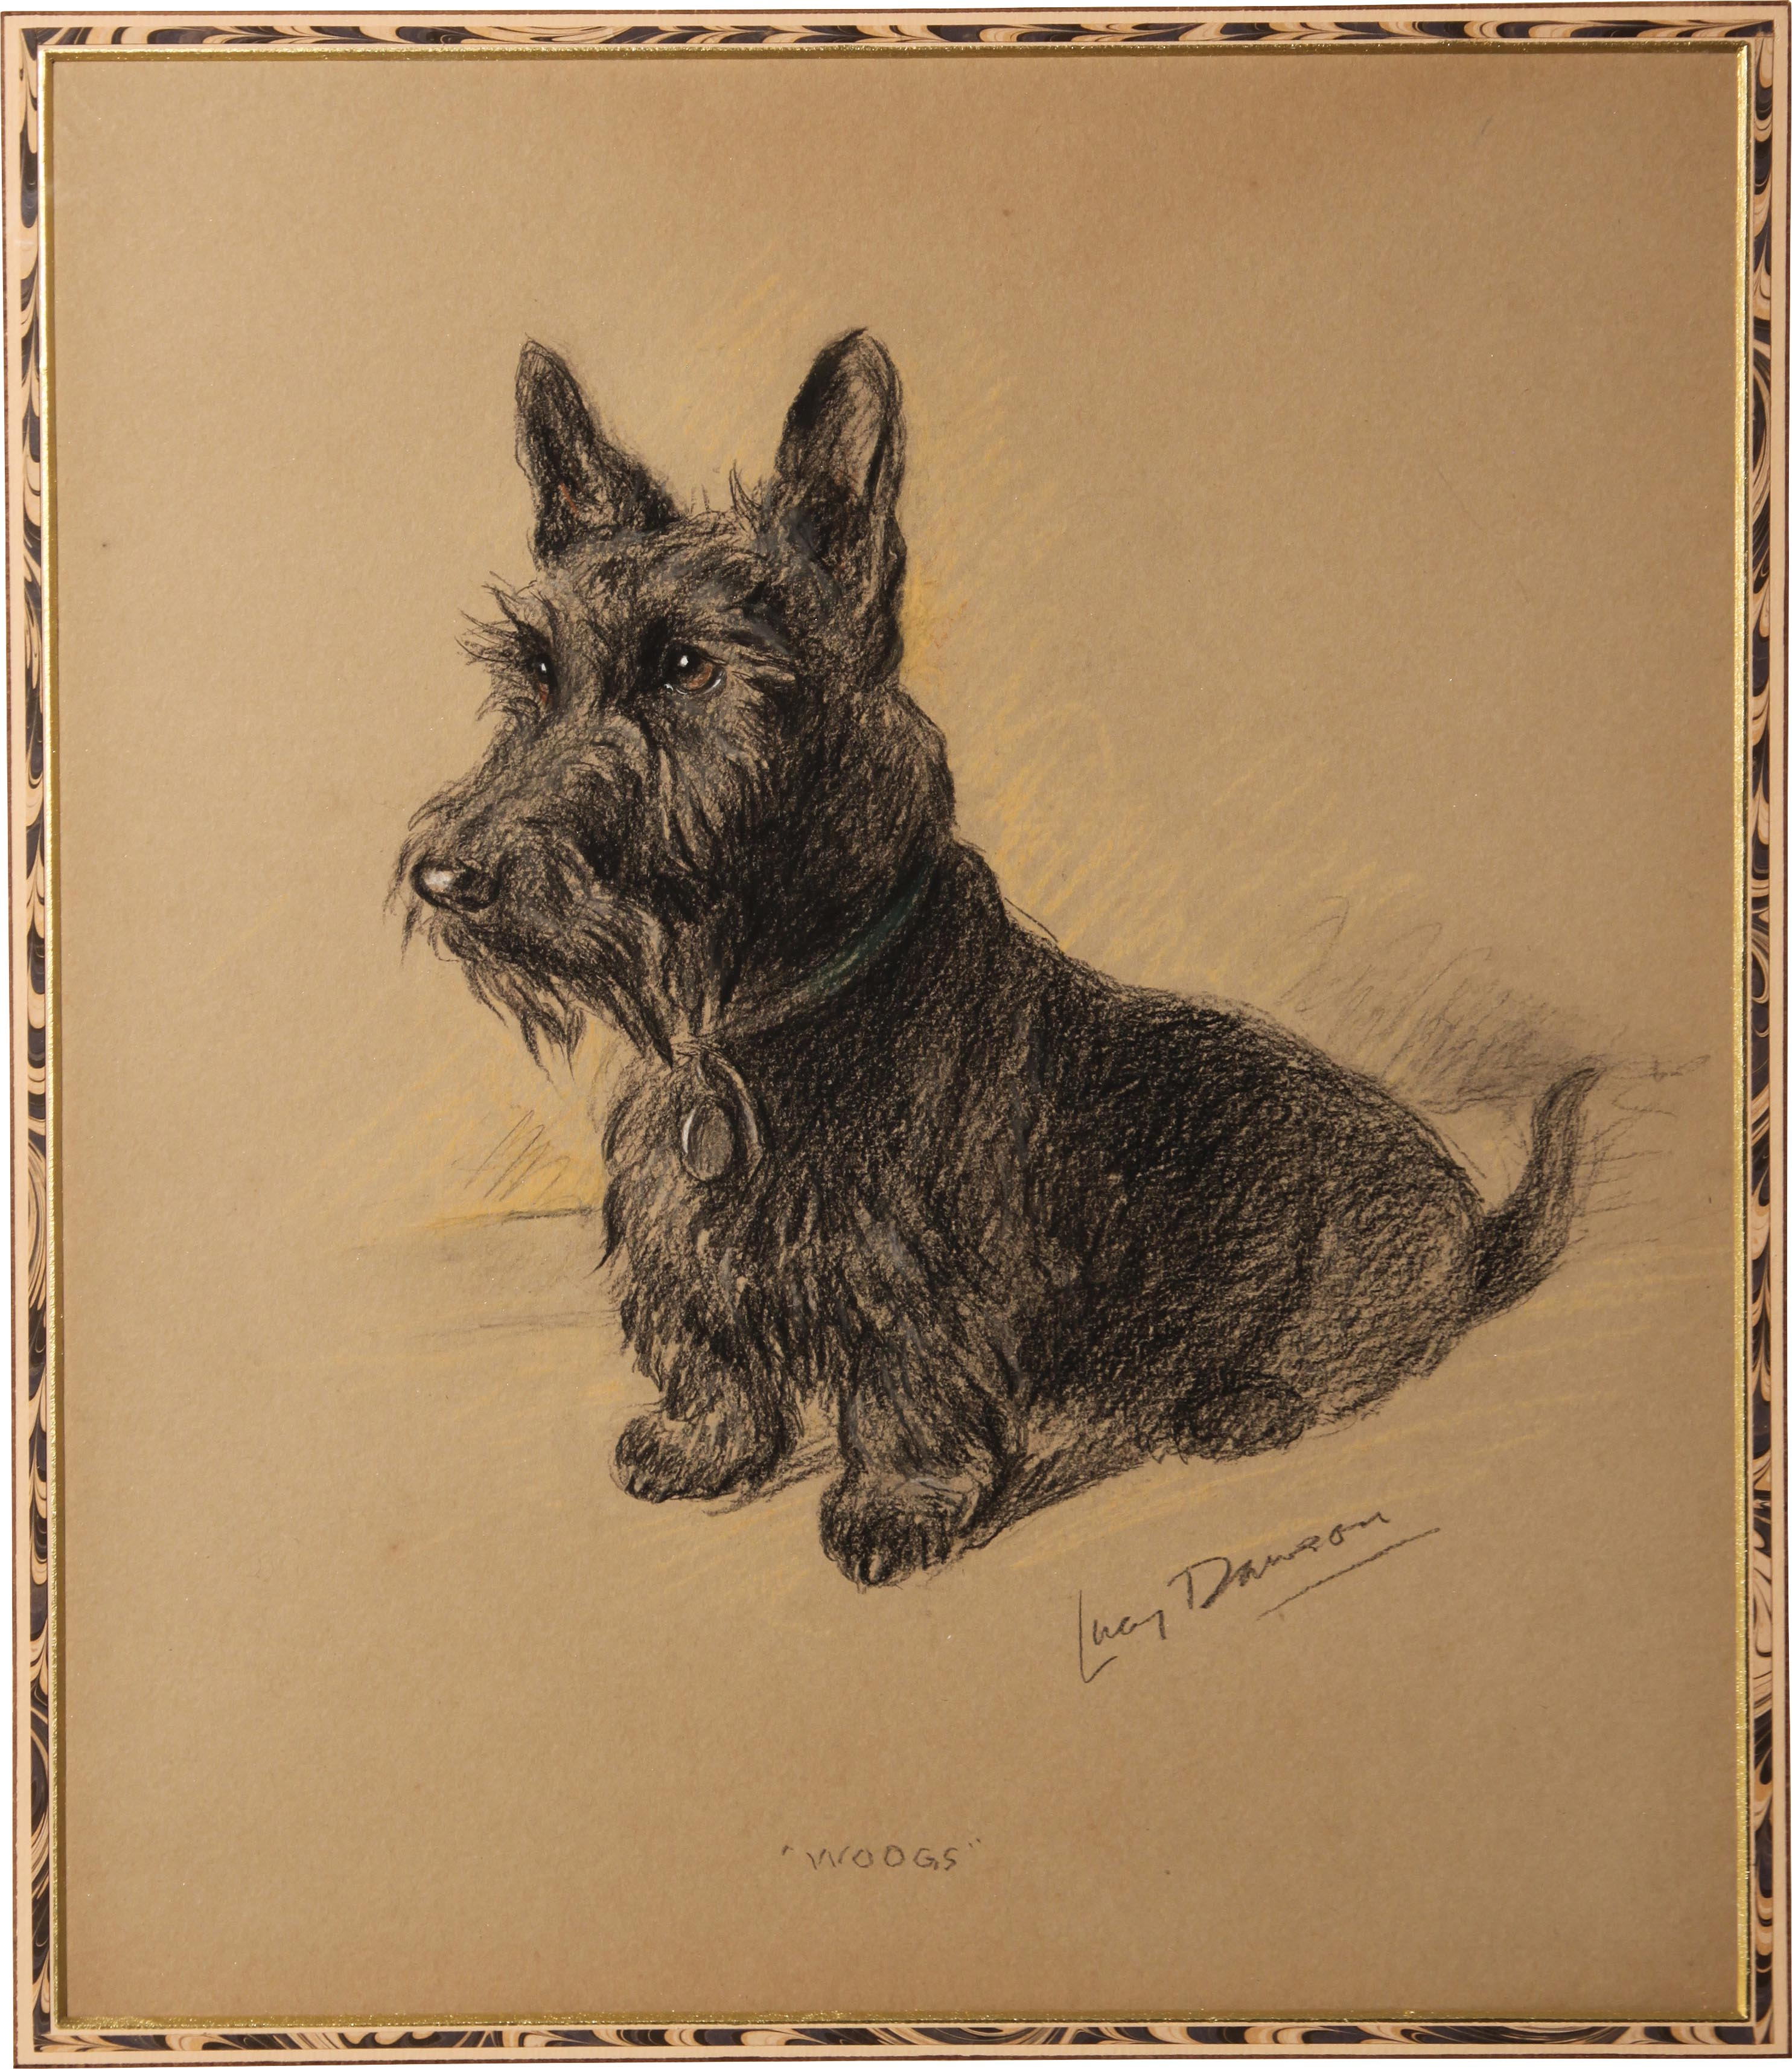 Click for larger image: Scottish Terrier by Lucy Dawson - Scottish Terrier by Lucy Dawson